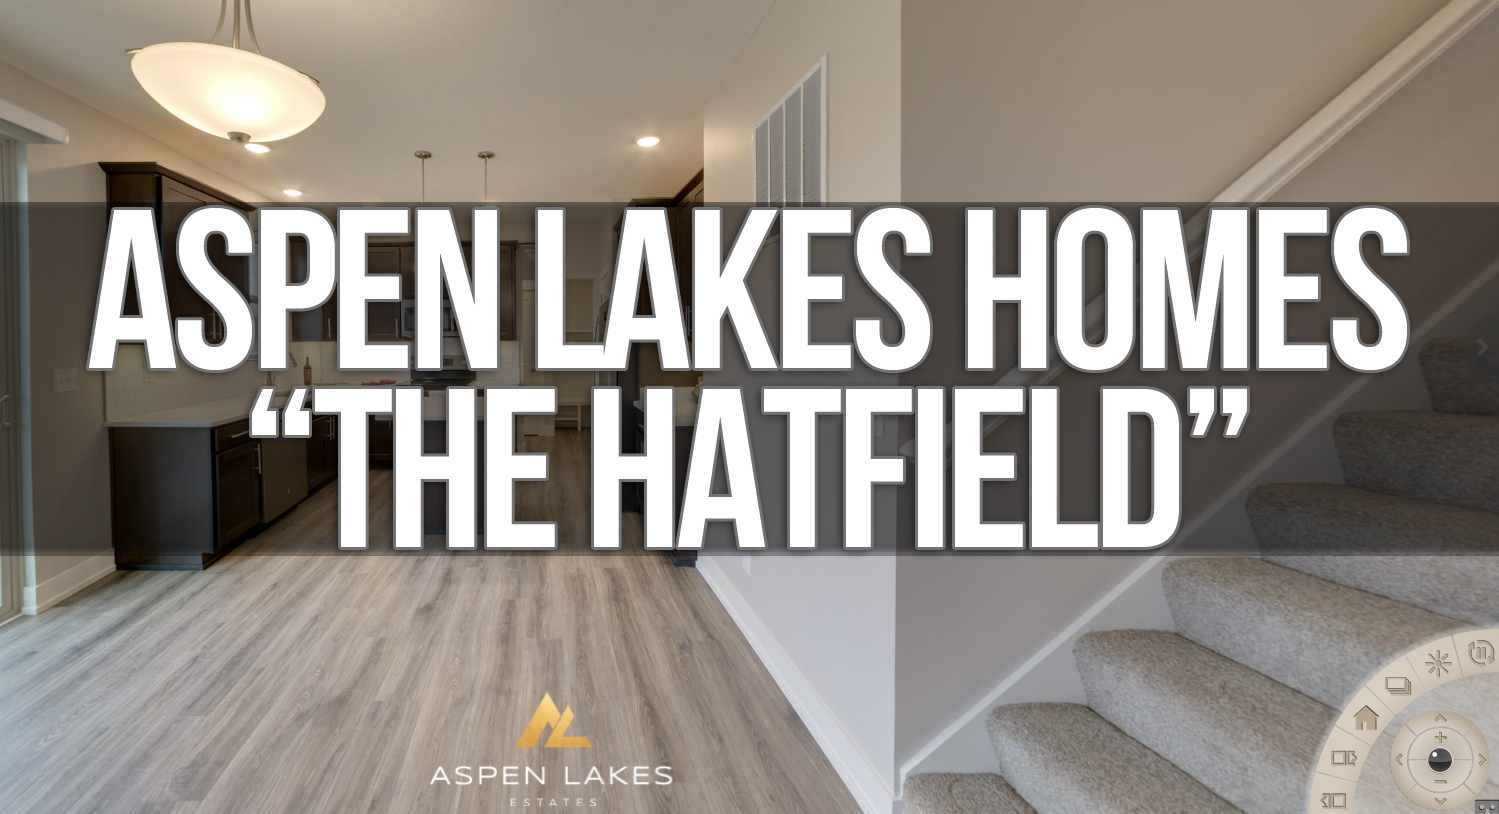 Homes For Rent In Holt, Michigan | Virtual Tour of the Hatfield Floor Plan